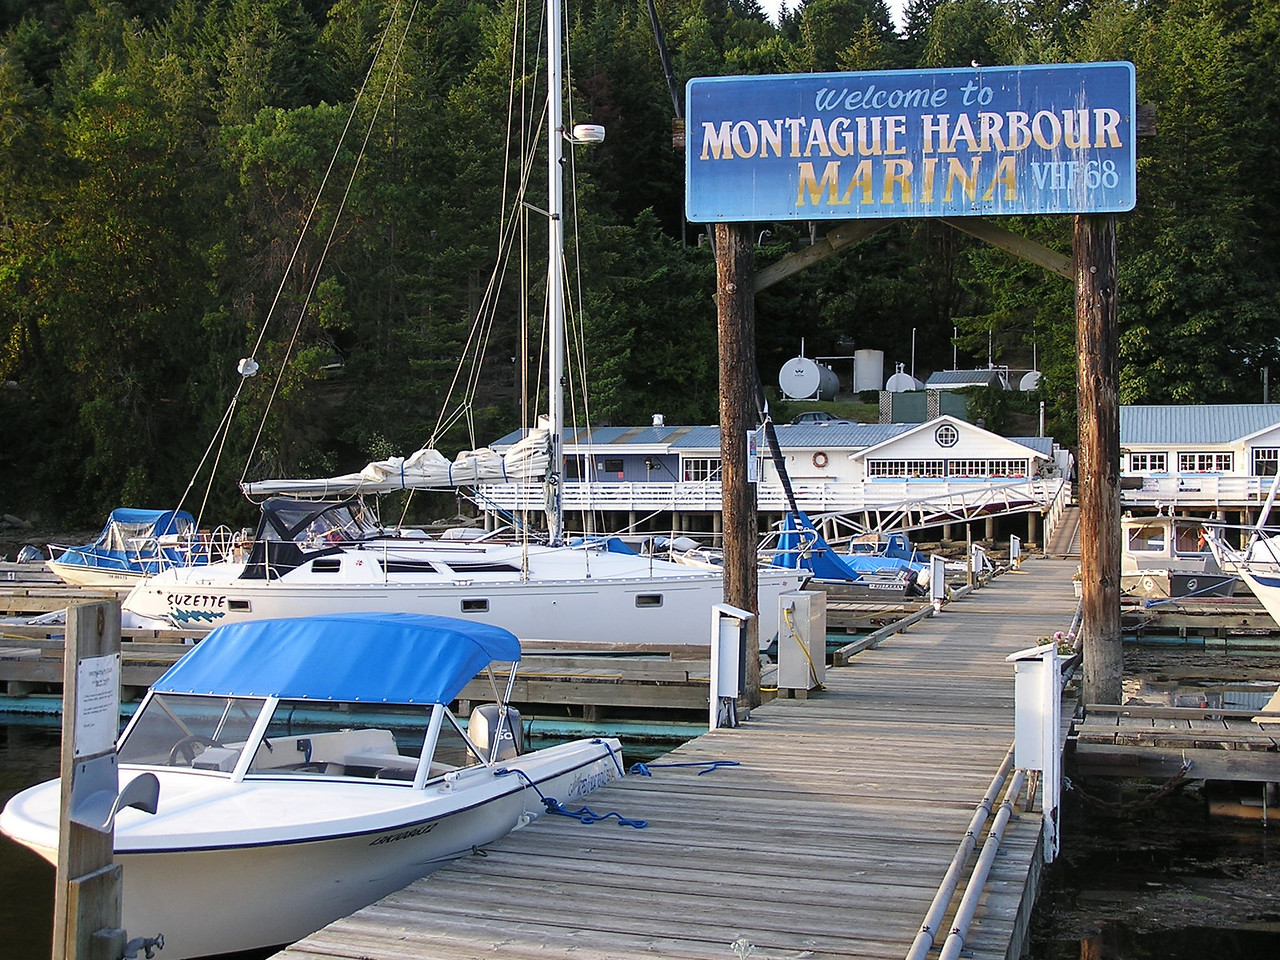 Day 3:  Montague Harbour on Galiano Island, Canada